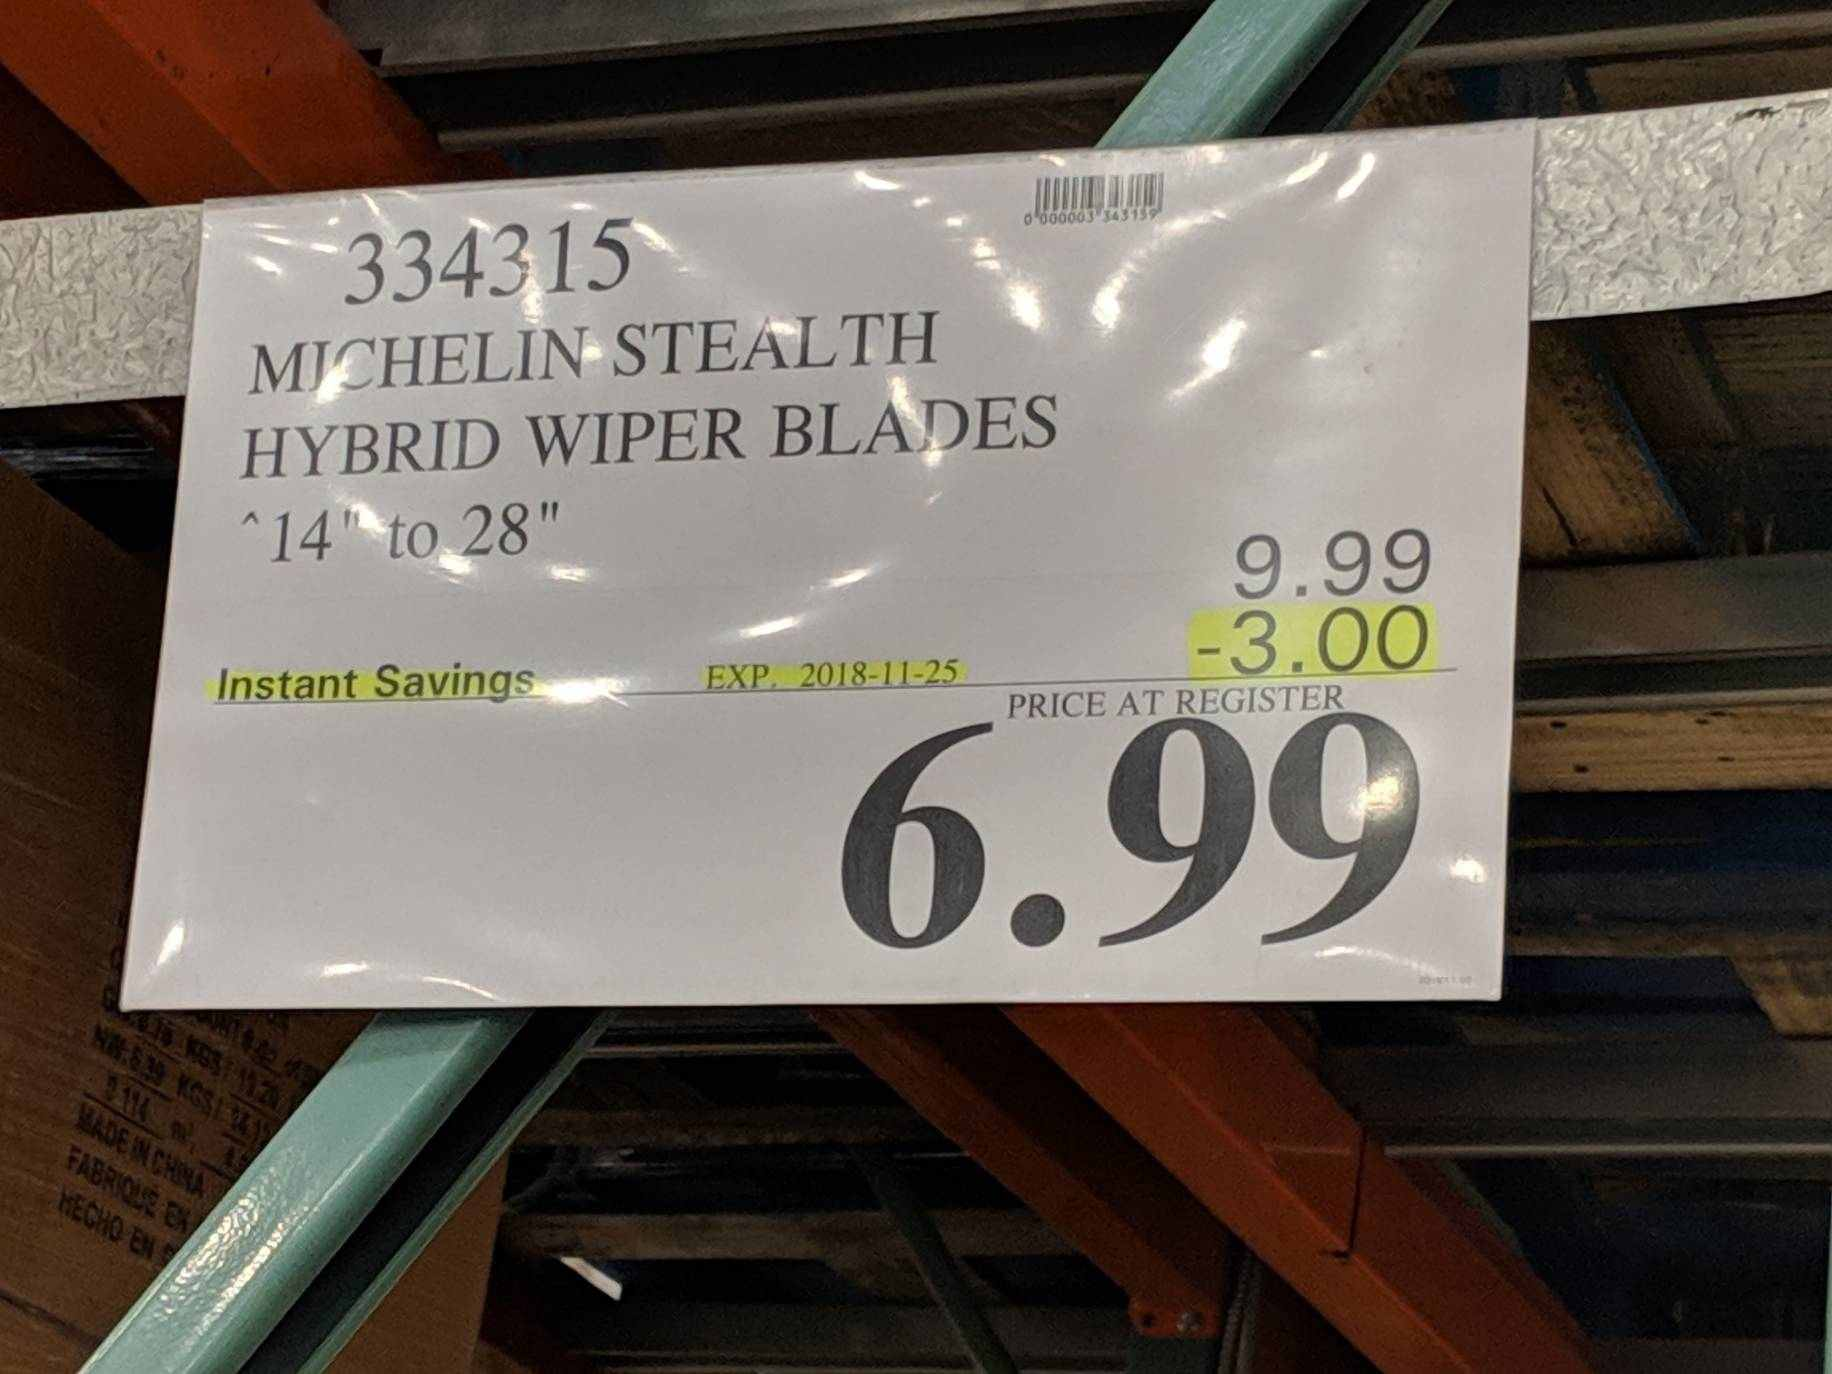 Costco Instore Black Friday Deals!!!! One day early! - Save